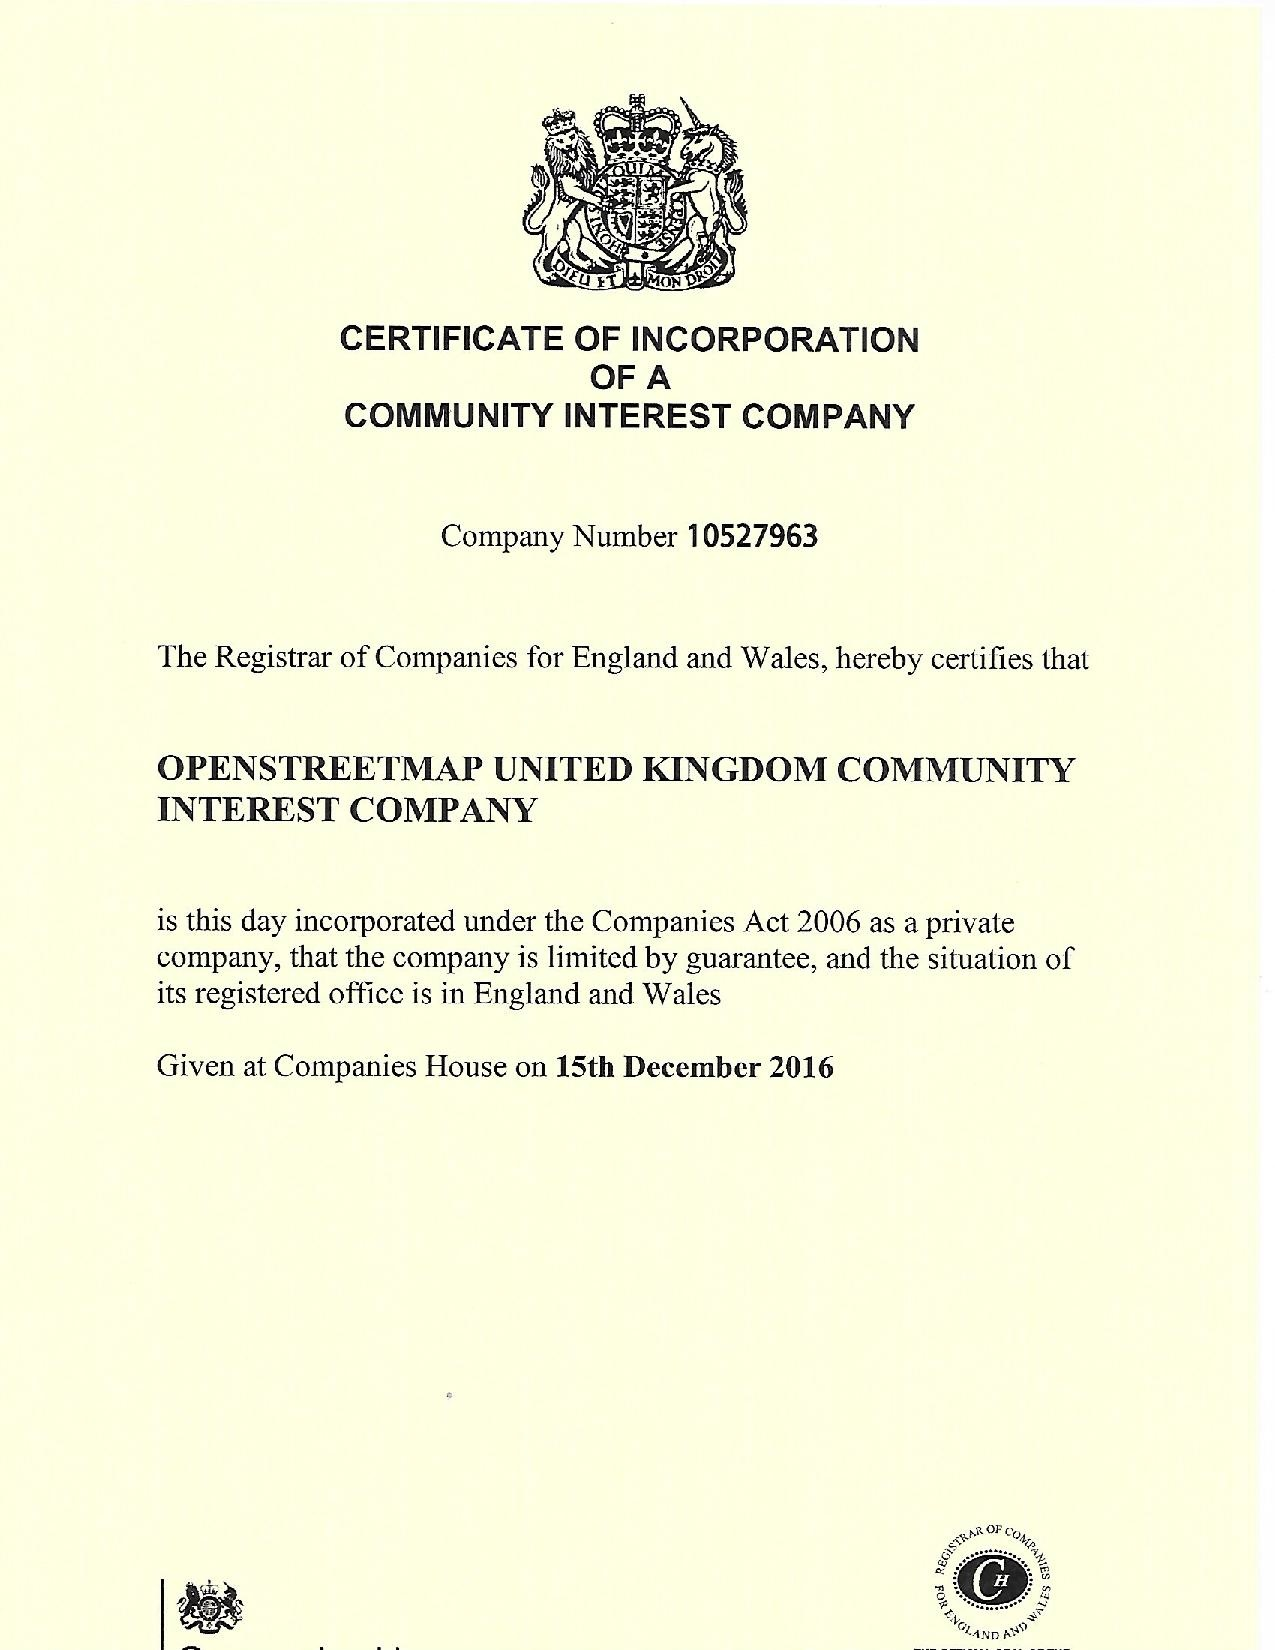 OSM-UK Certificate of Incorporation.pdf